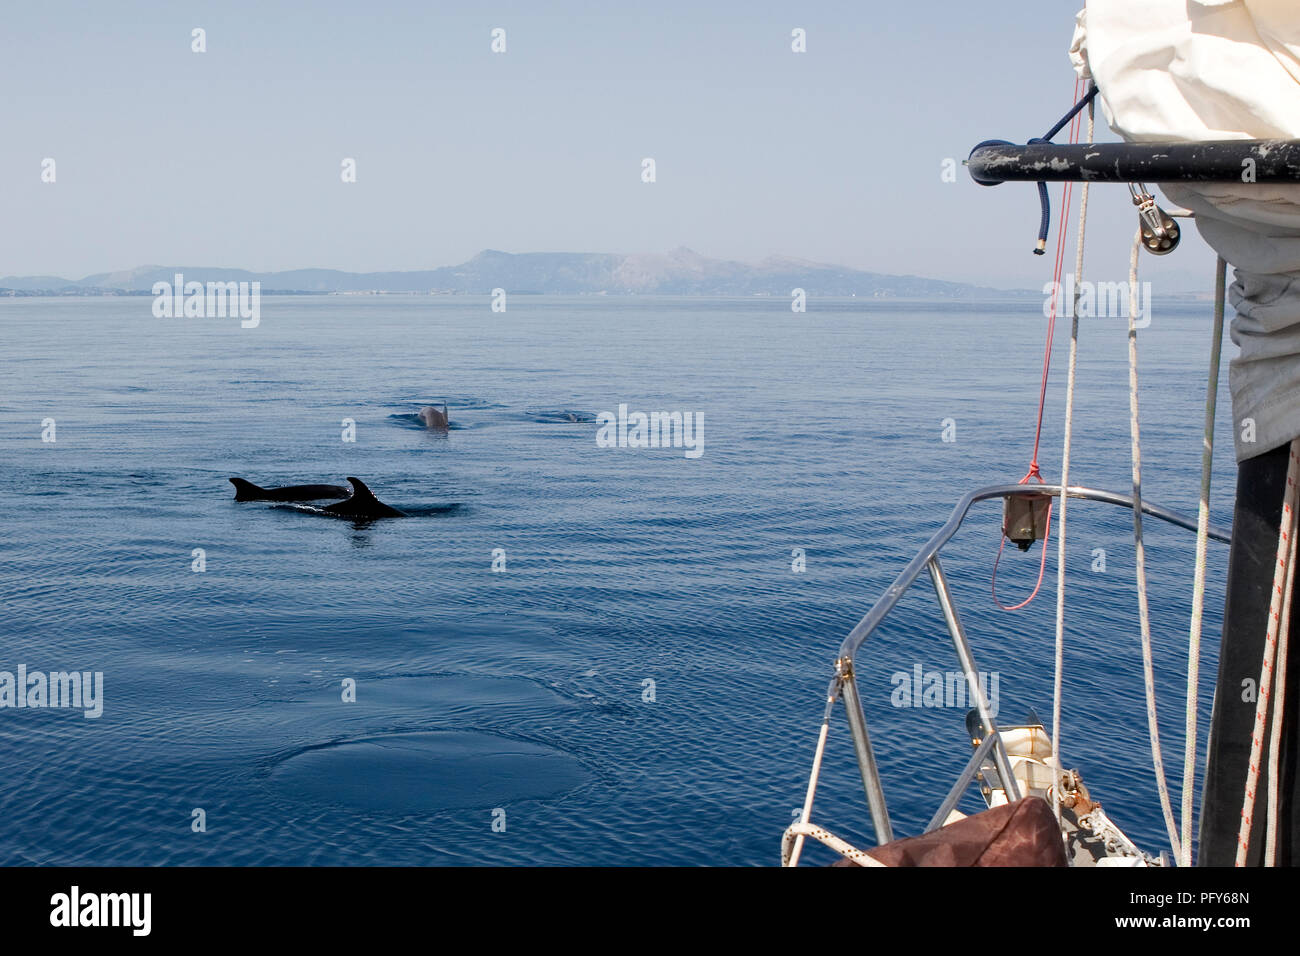 Dolphins, Corfu Channel, Greece - Stock Image